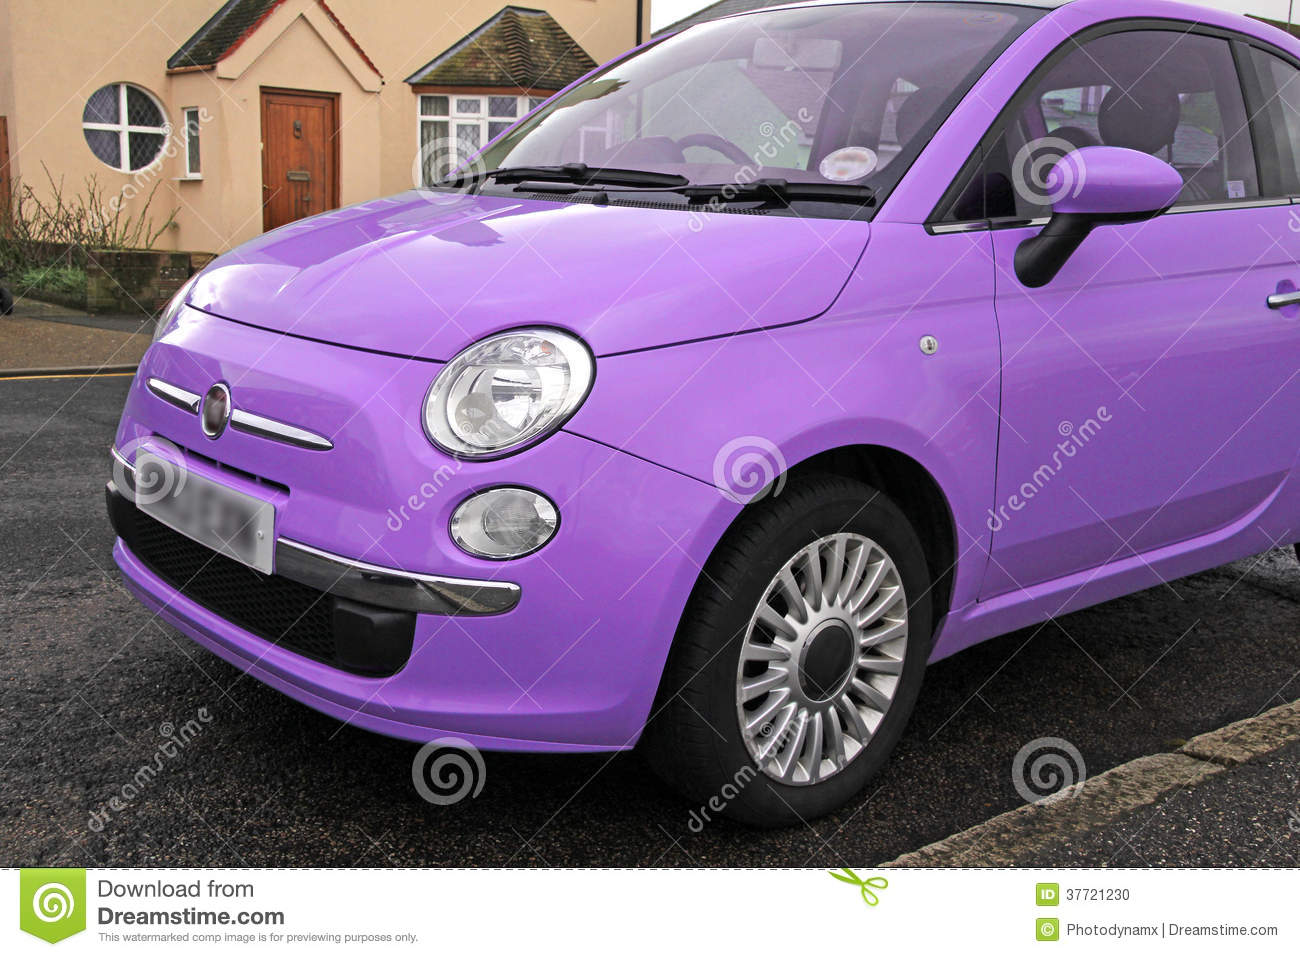 Fiat 500 Small Modern Car Stock Photo Image Of Violet 37721230